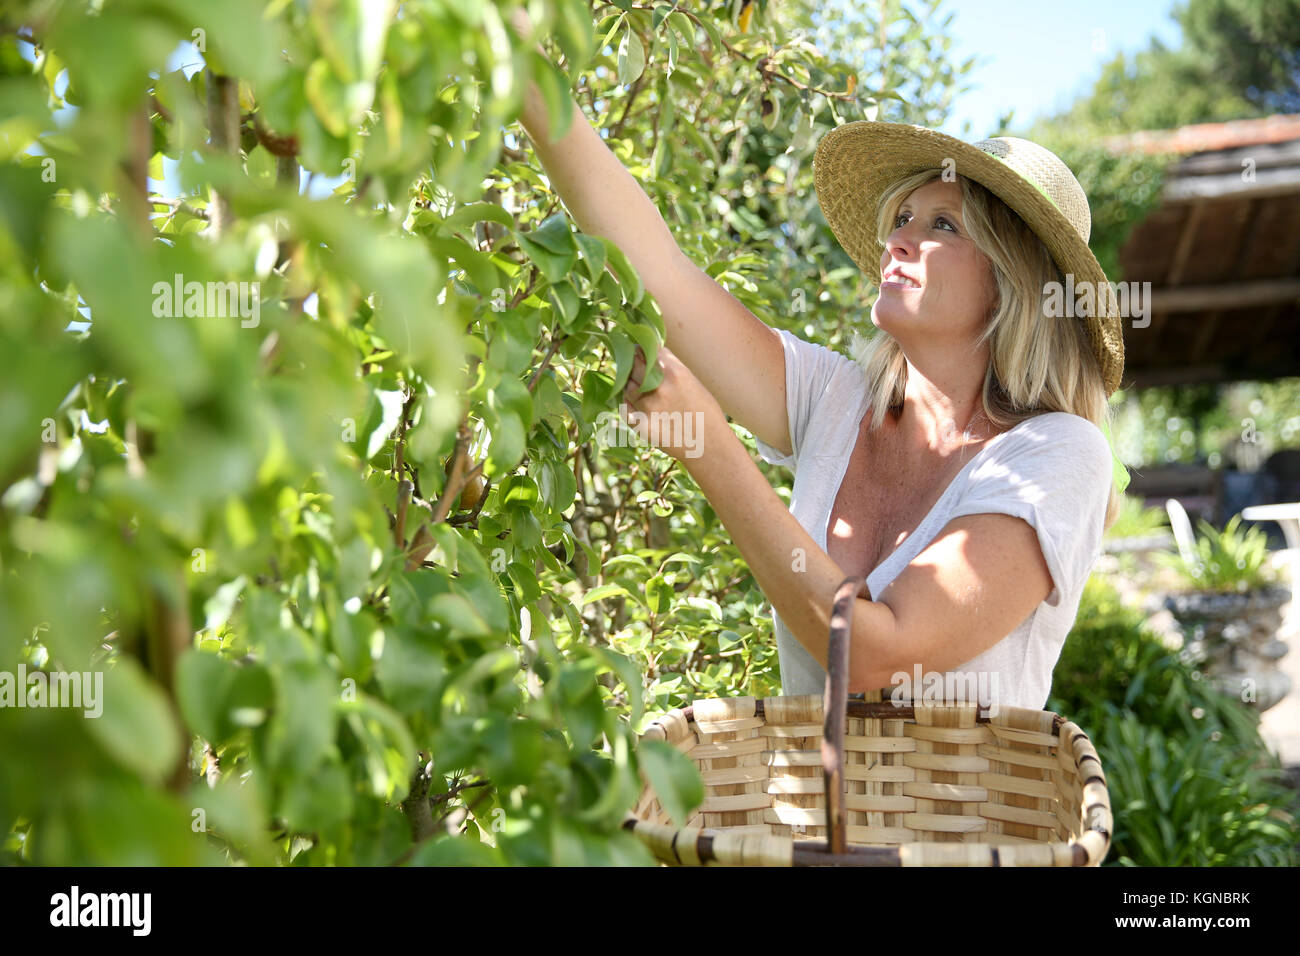 Smiling blond woman picking fruits from tree - Stock Image